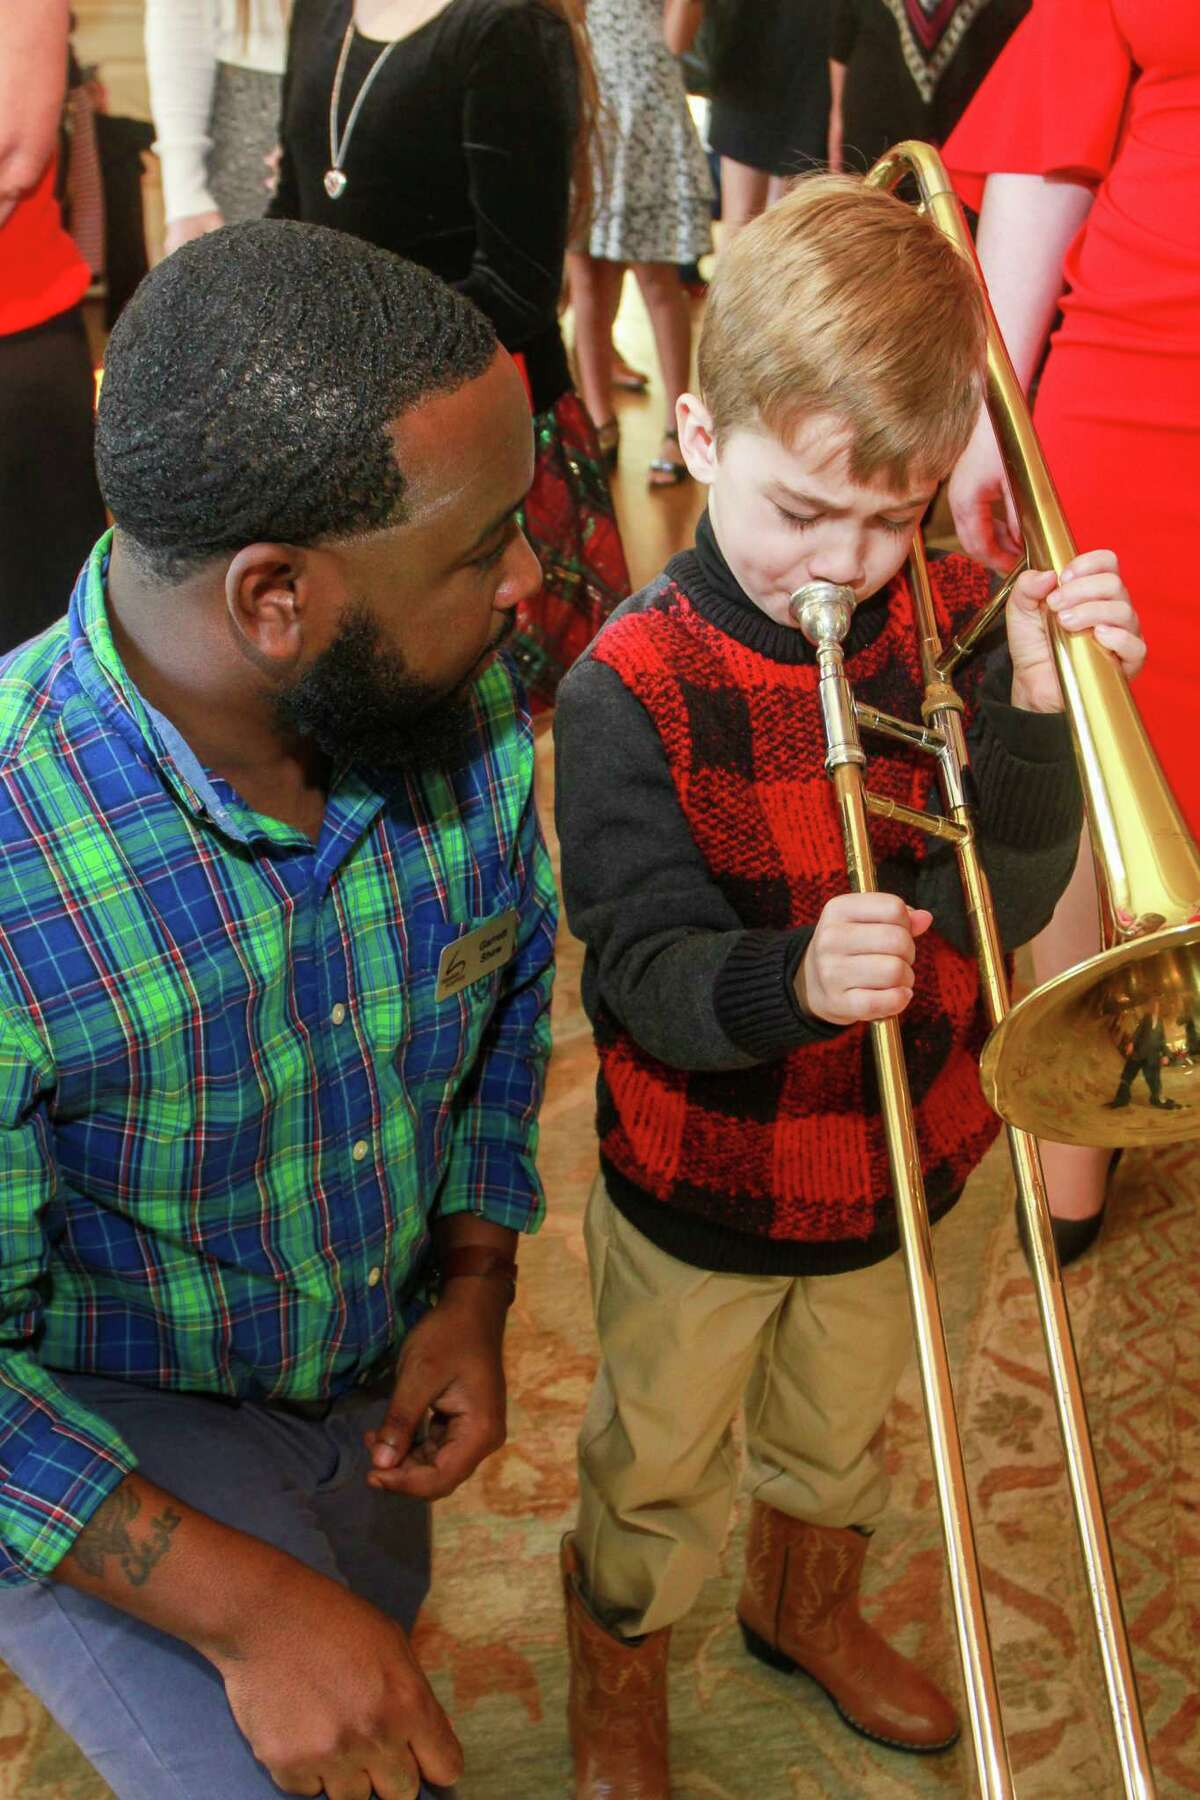 Garrett Shaw of the Houston Symphony introduces the trombone to William Keeton, 5, at Houston Symphony's Magical Musical Morning.